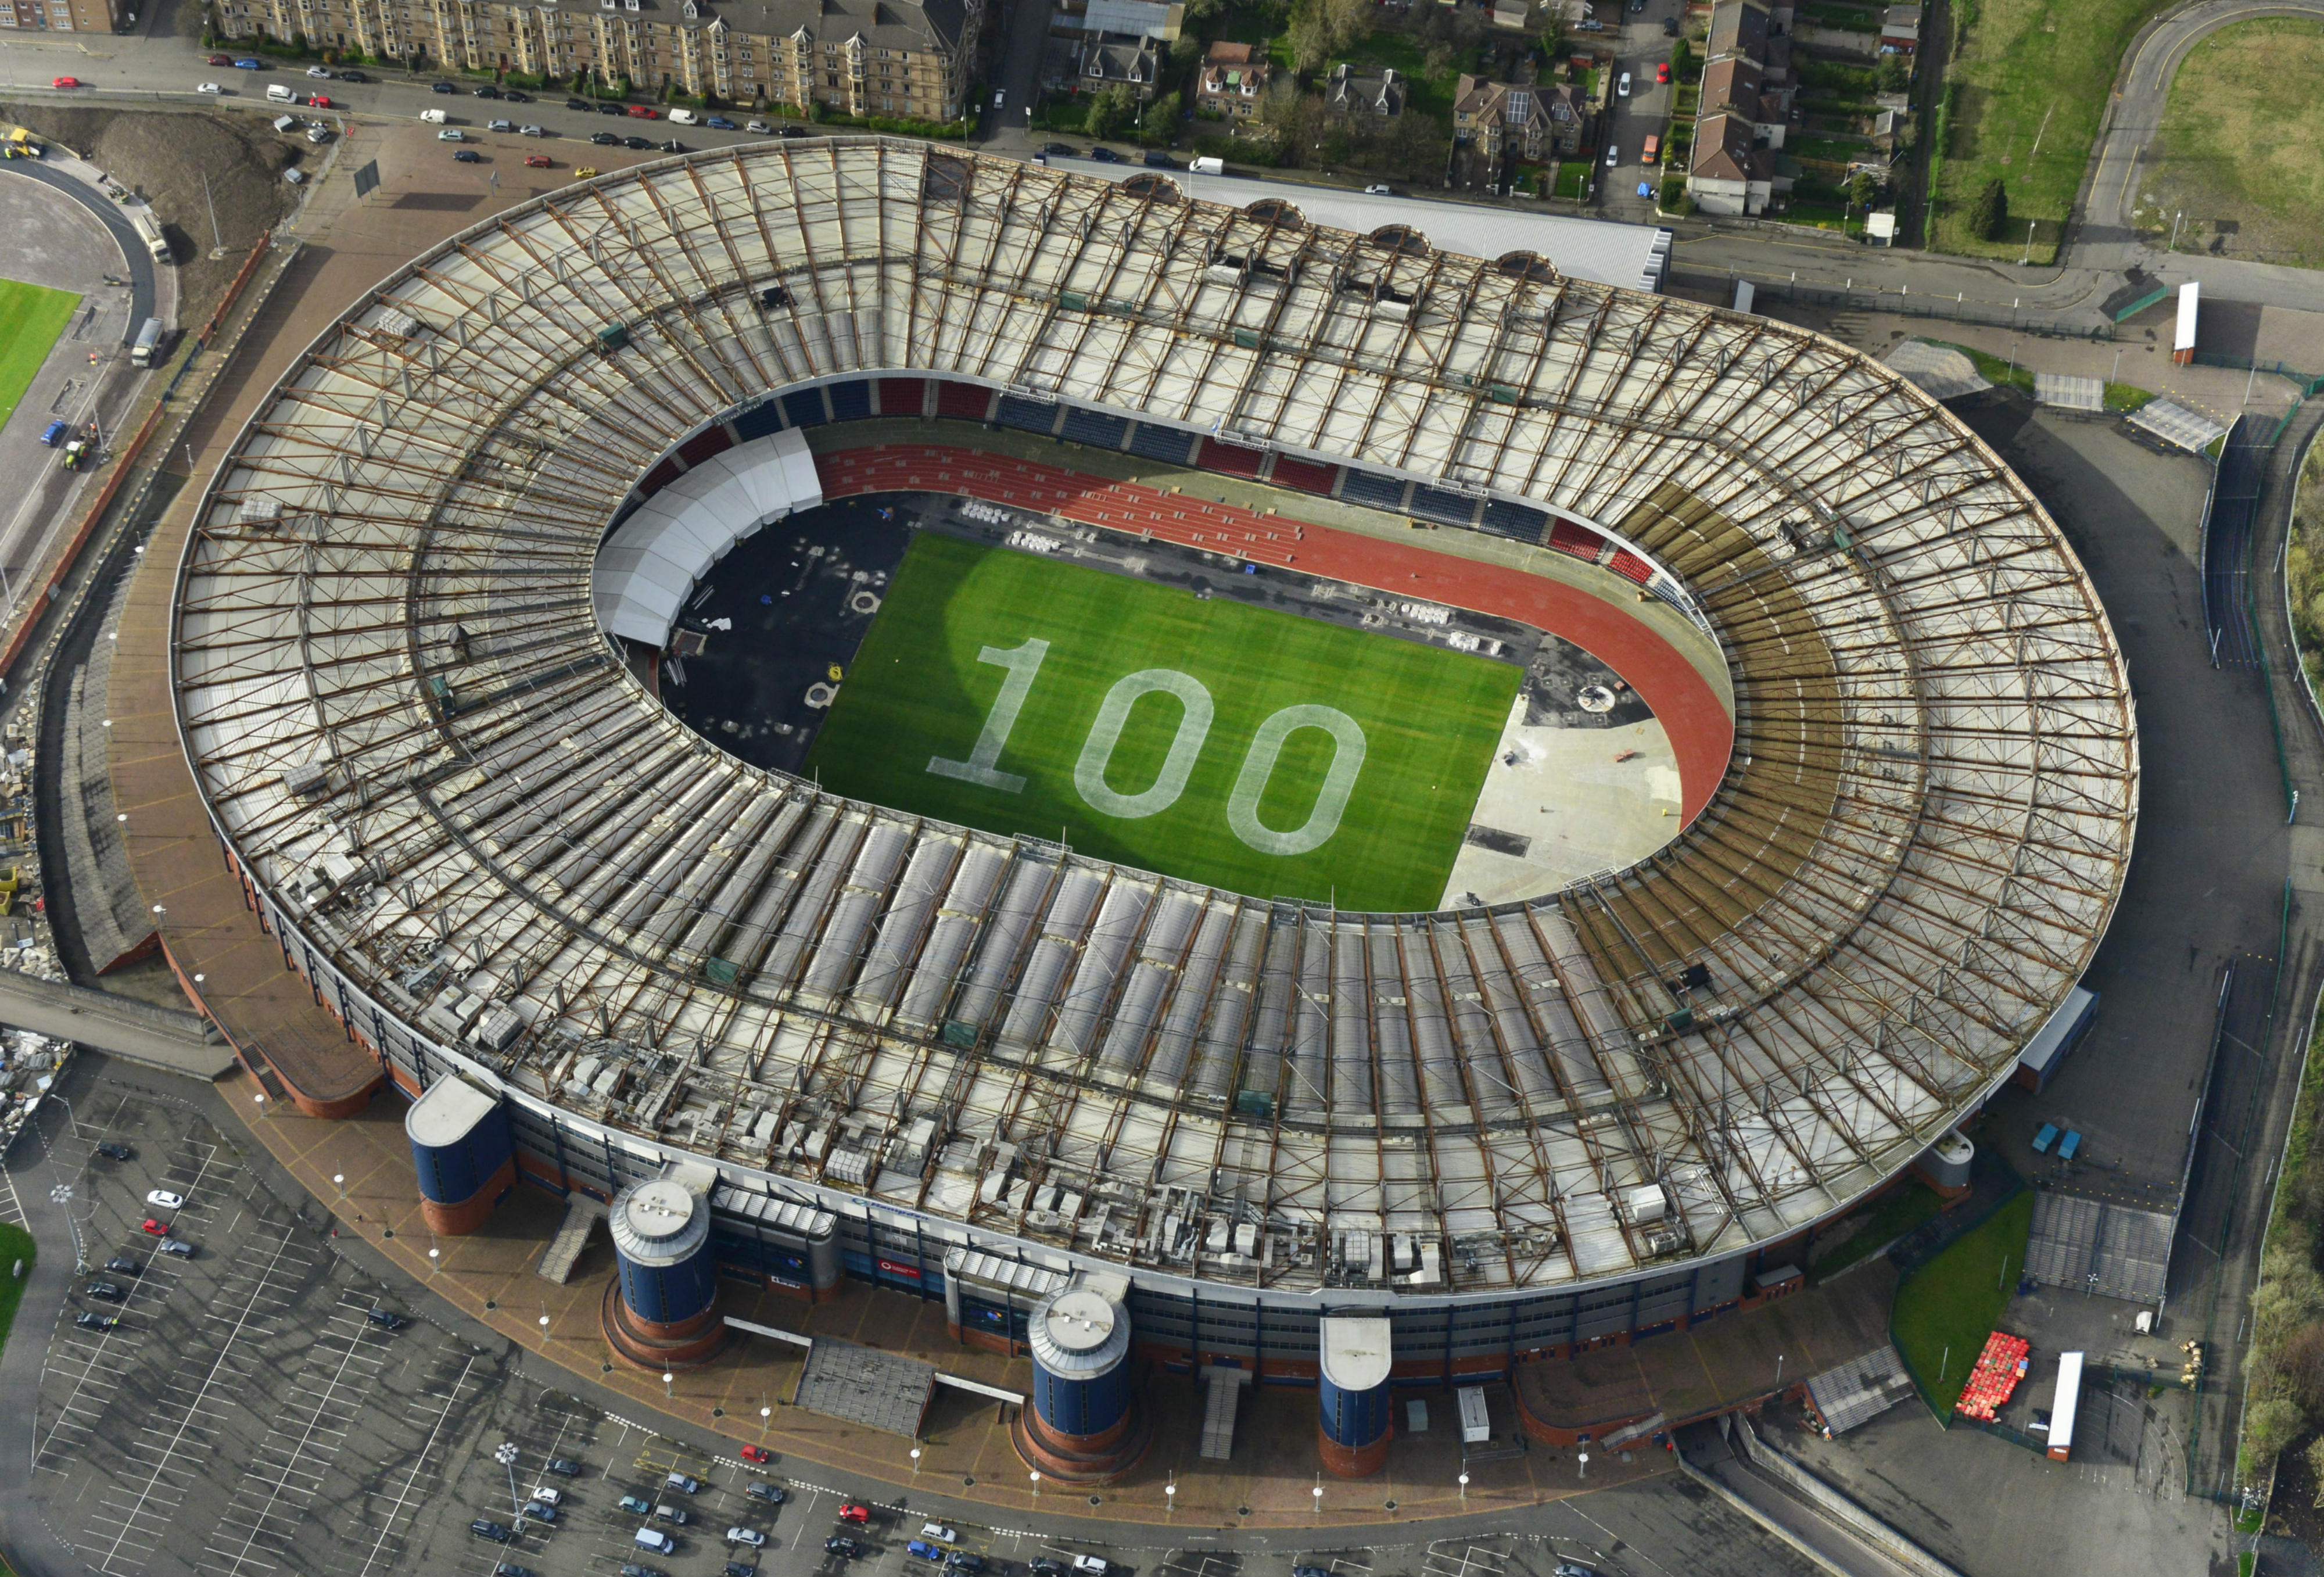 Hampden Stadium celebrates 100 days to go before the XX Commonwealth Games